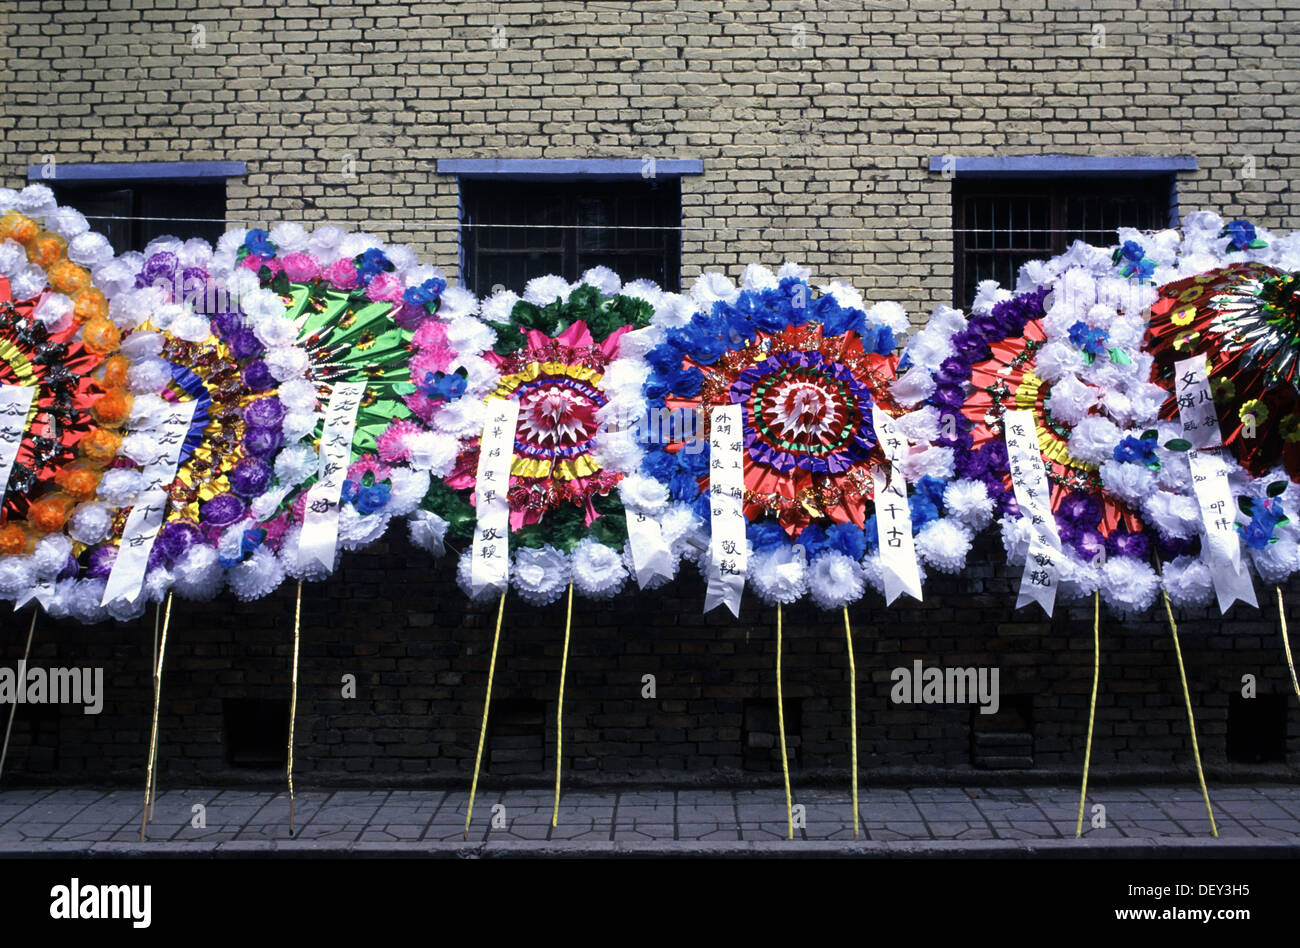 Funeral paper cut decorations for sale in China Stock Photo